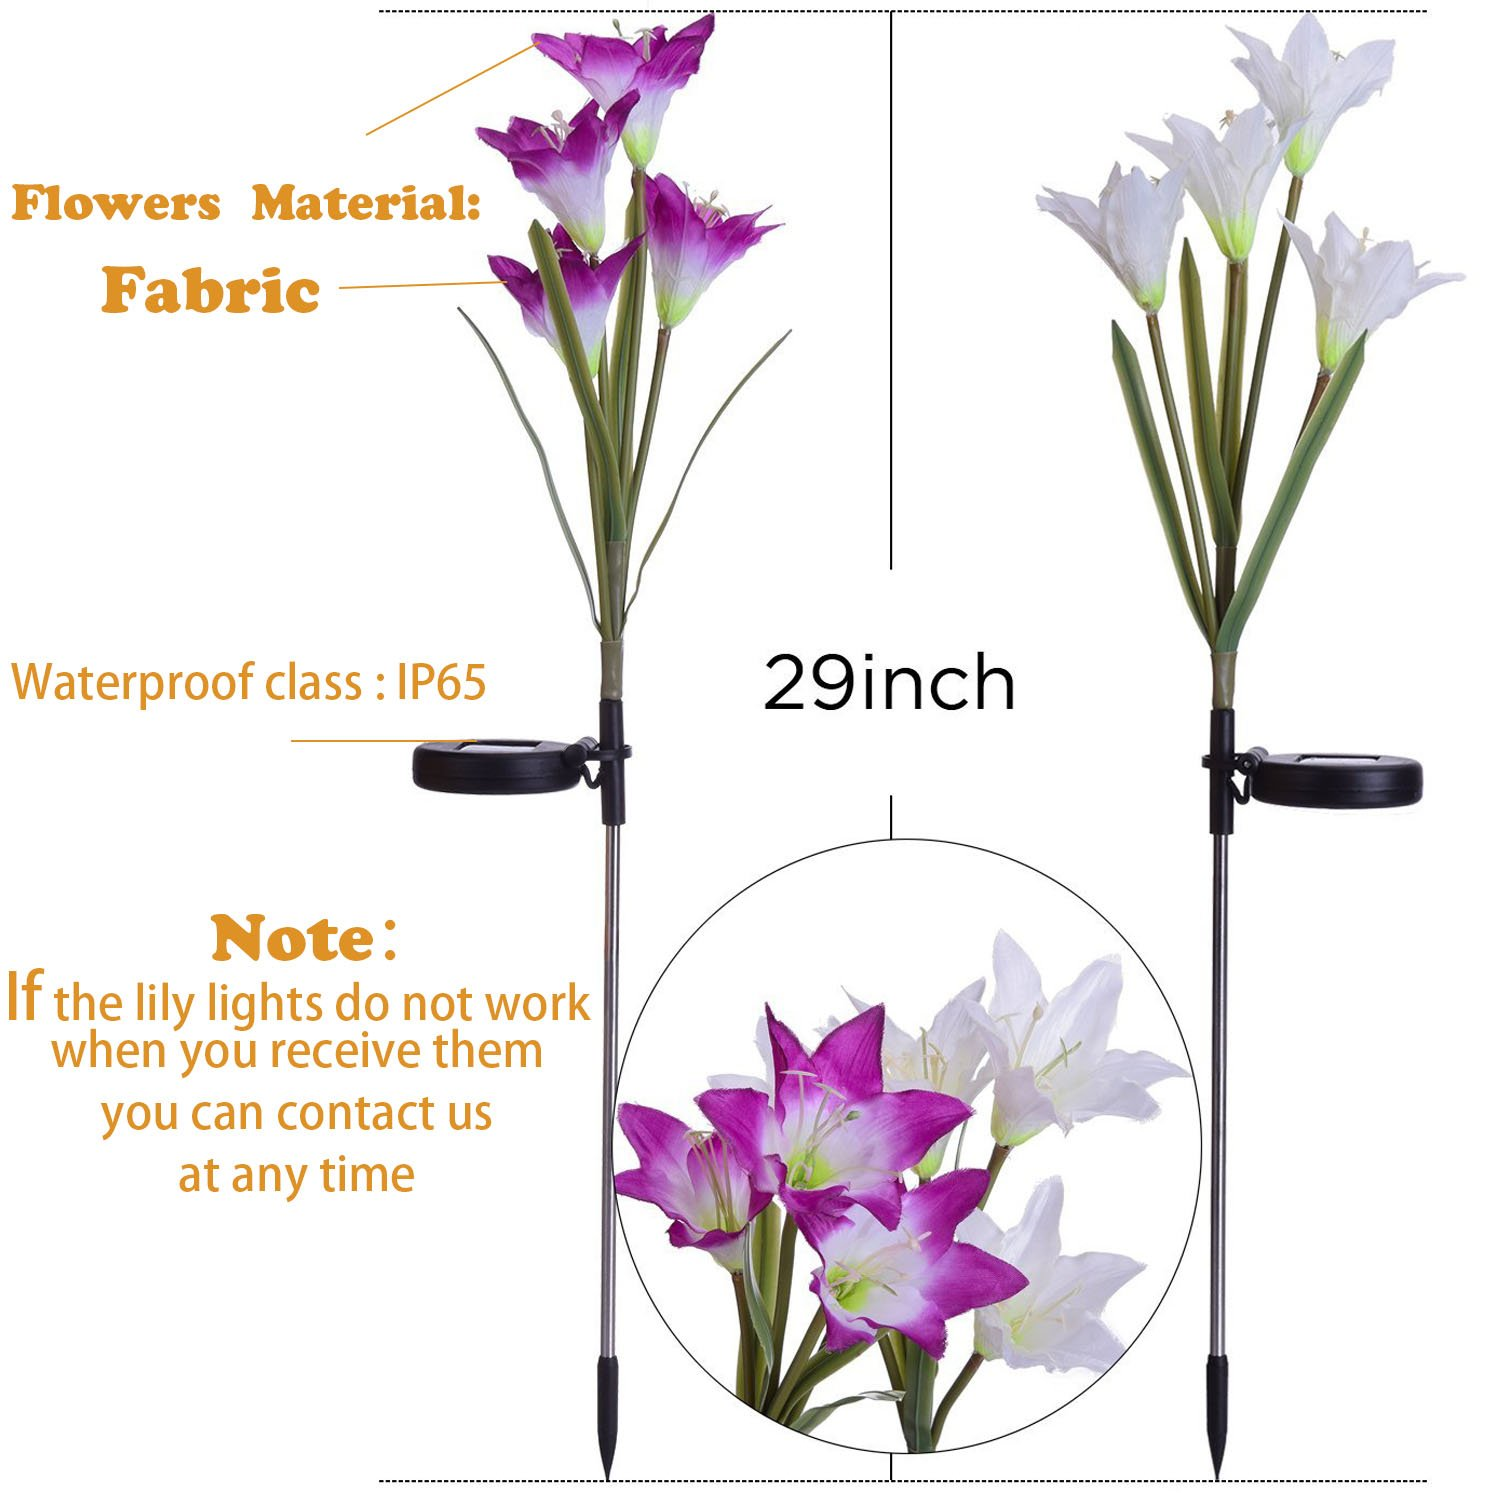 Outdoor Solar Garden Stake Lights - 2 Pack Solarmart Solar Powered Lights with 8 Lily Flower, Multi-color Changing LED Solar Stake Lights for Garden, Patio, Backyard (Purple and White) by Solarmart (Image #5)